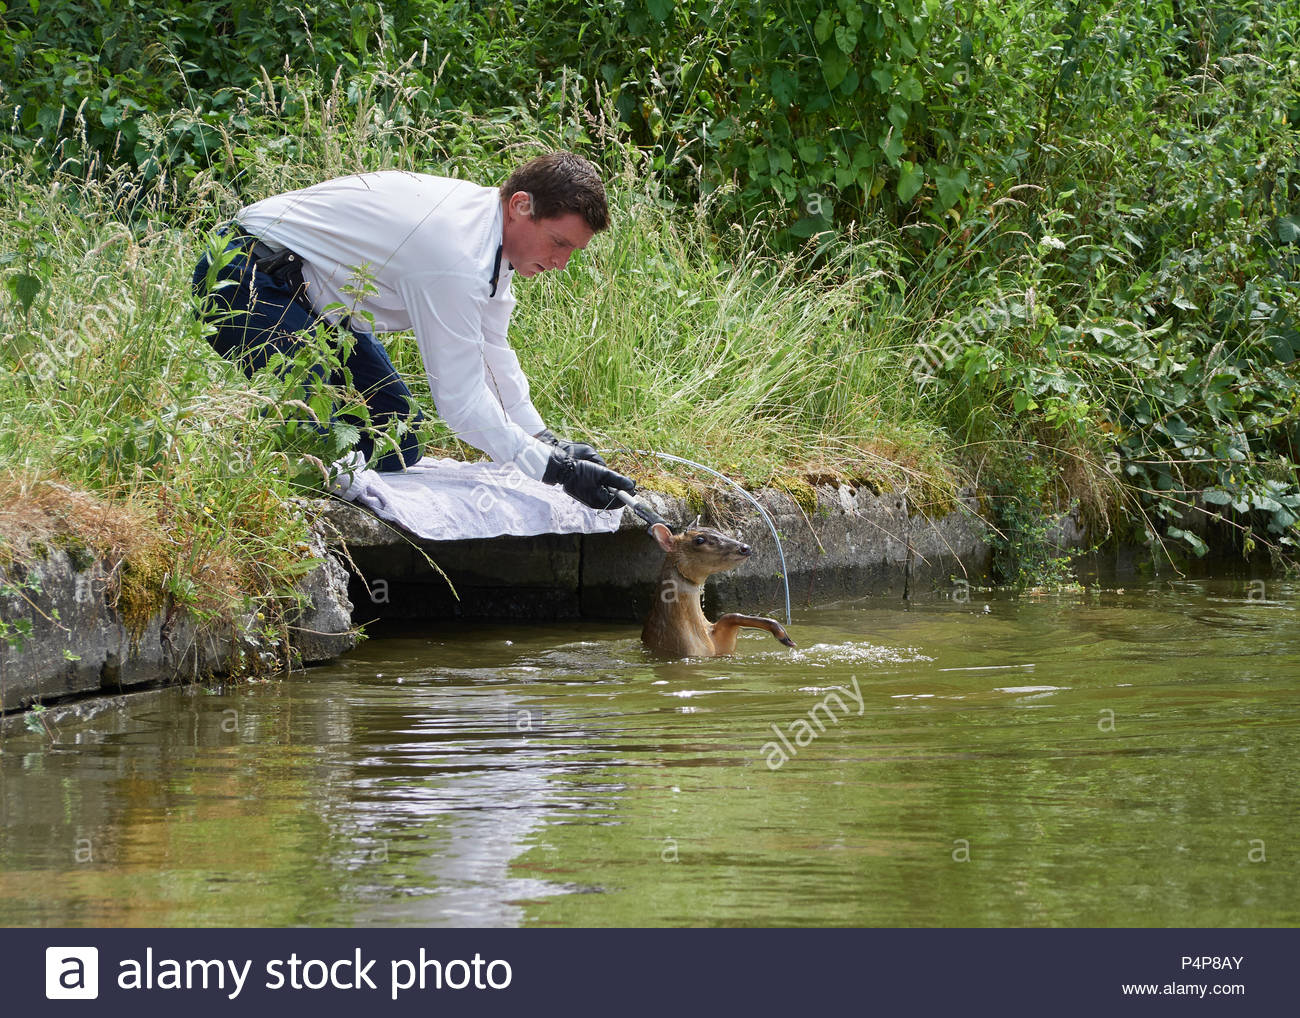 RSPCA officer Jamie attempting to bring the rescued deer calmly to the bankside - Stock Image